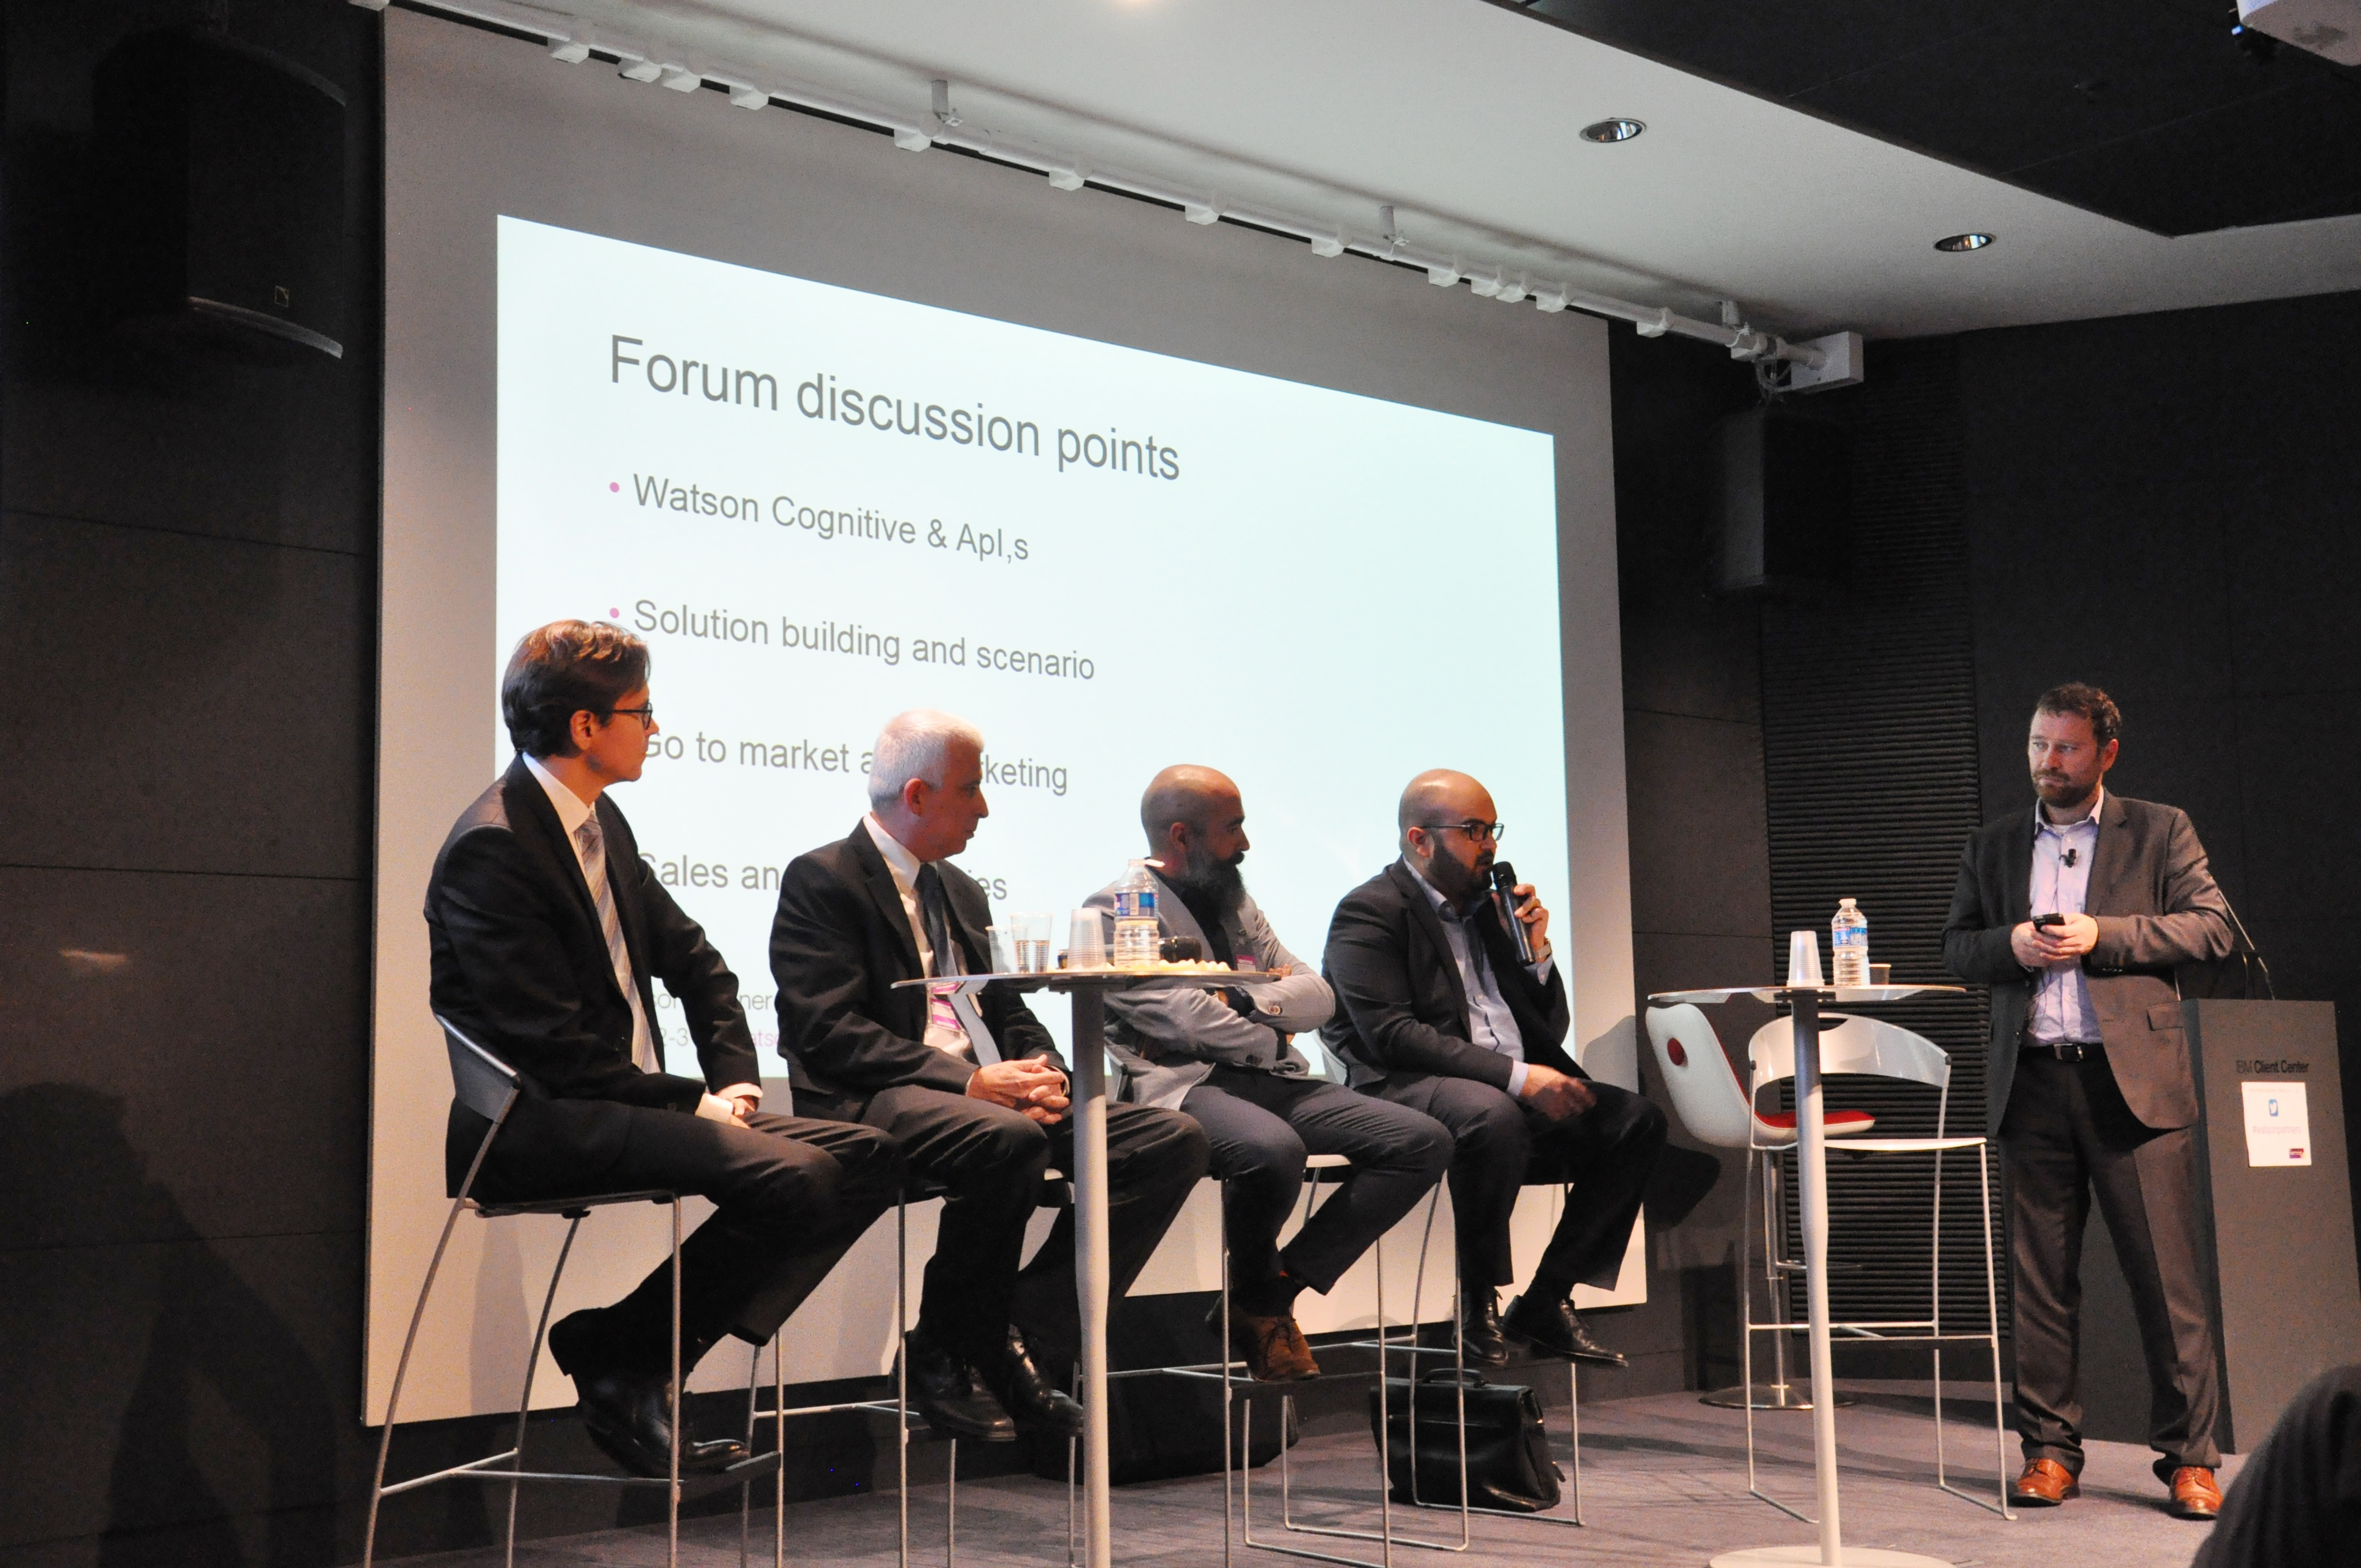 ibm-watson-partner-symposium-panel-discussion.jpg